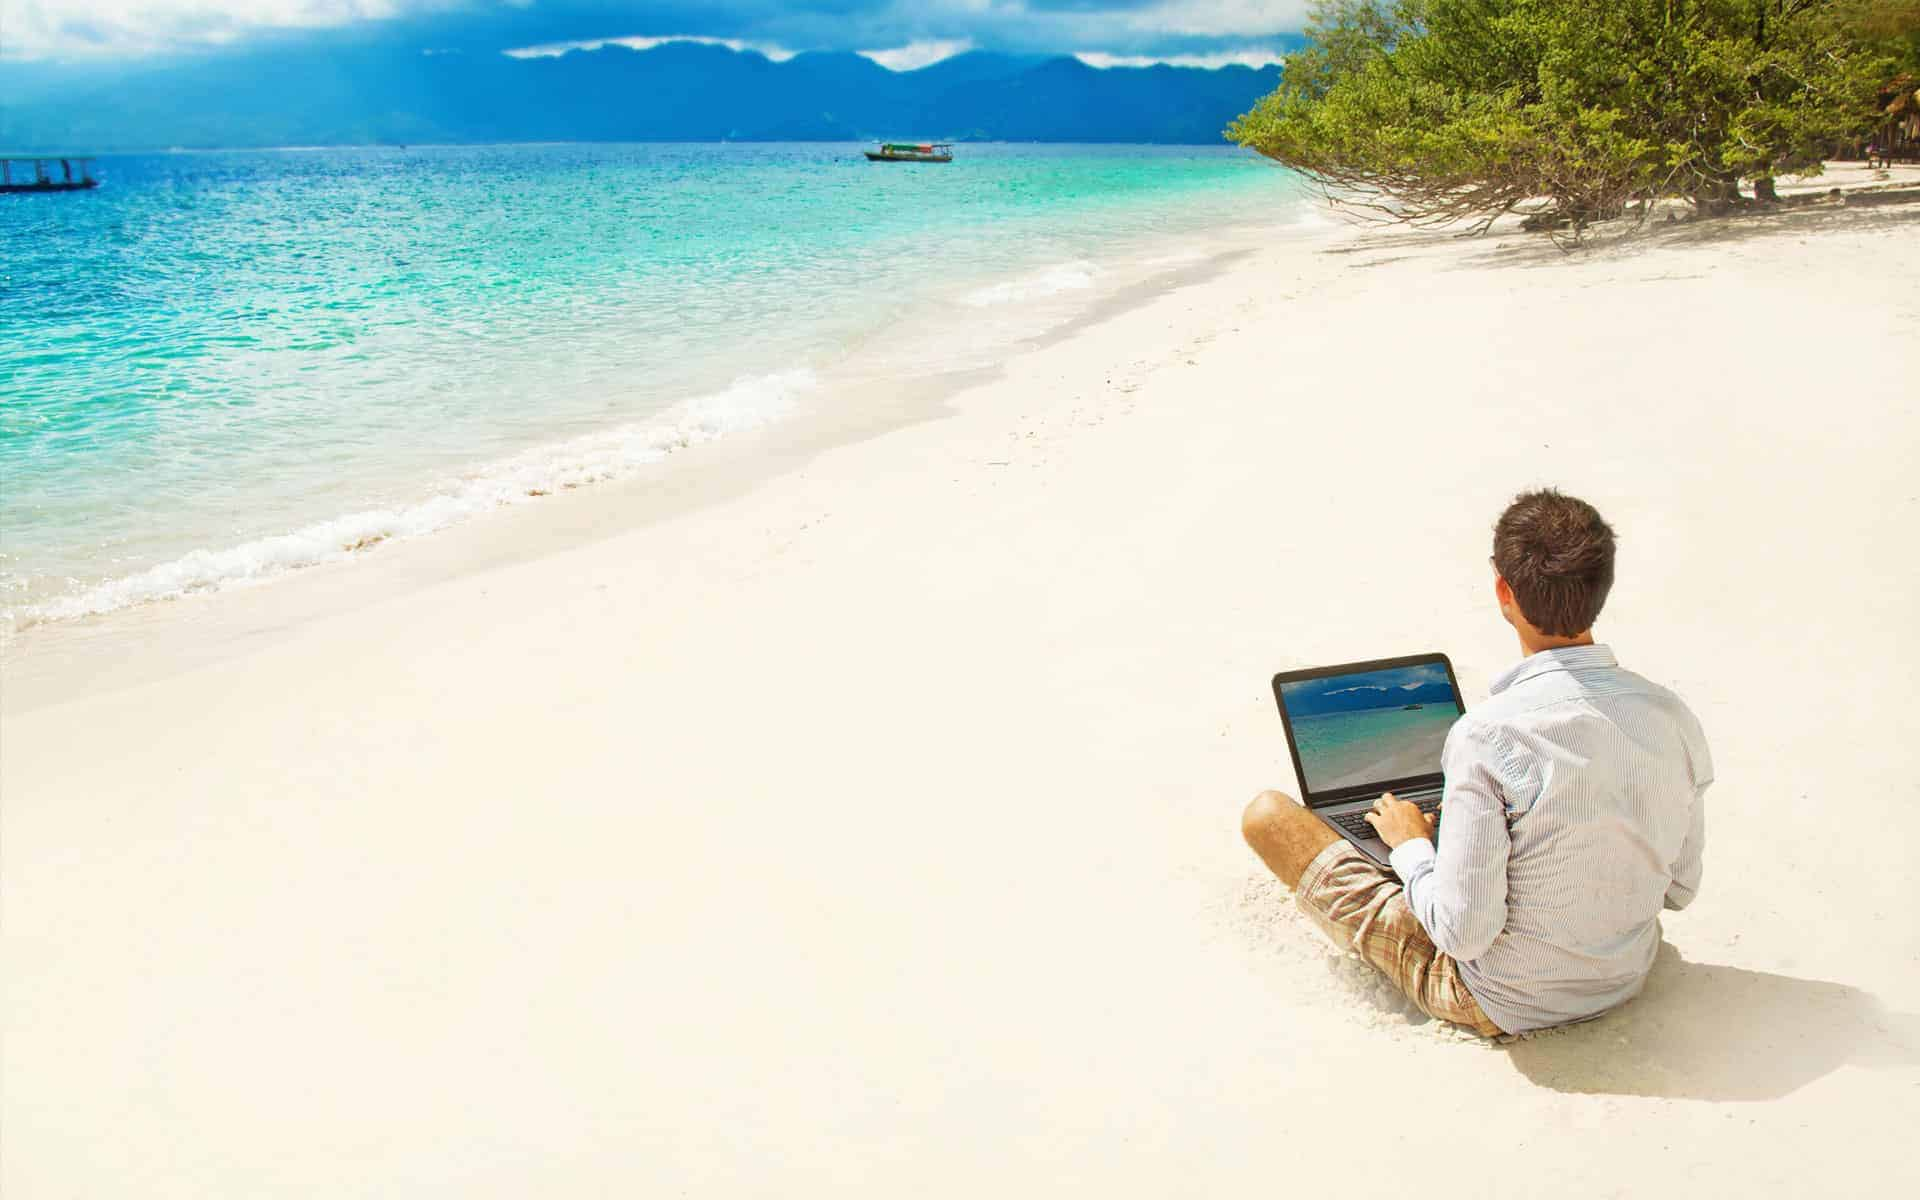 Where to find digital nomad jobs?